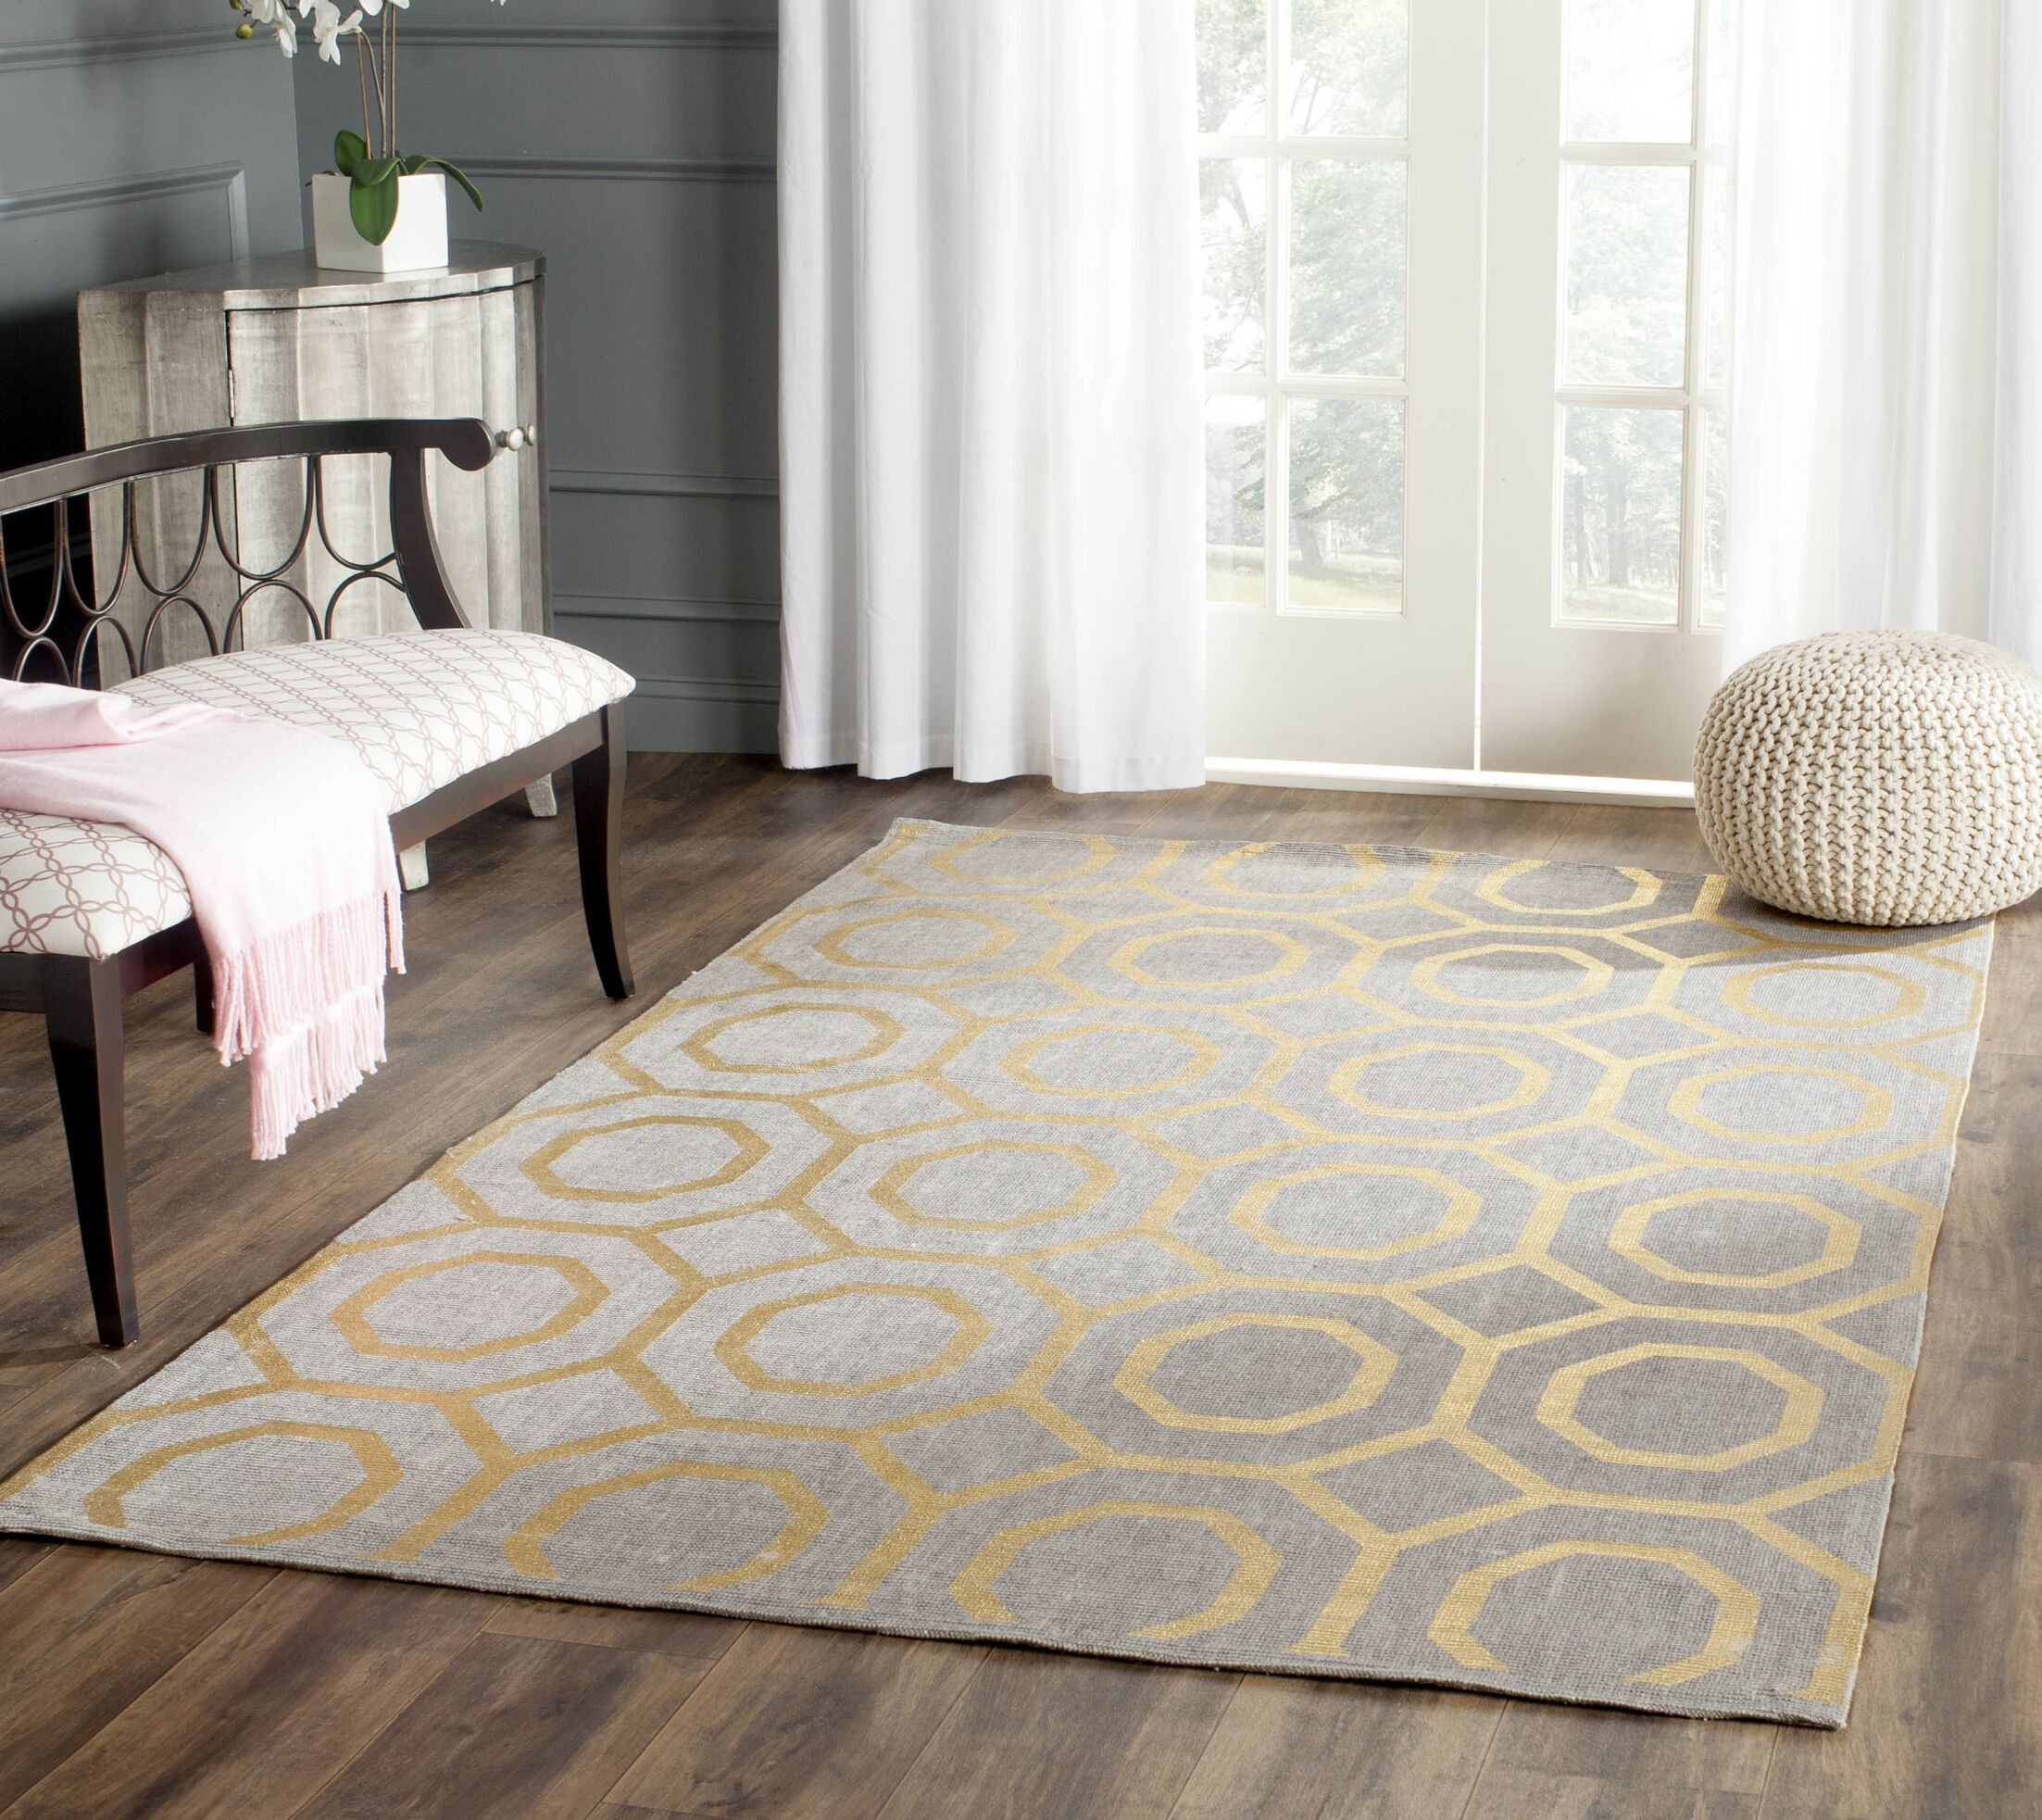 Columbus Circle Hand-Woven Brown/Ivory Area Rug Rug Size: Rectangle 8' x 10'